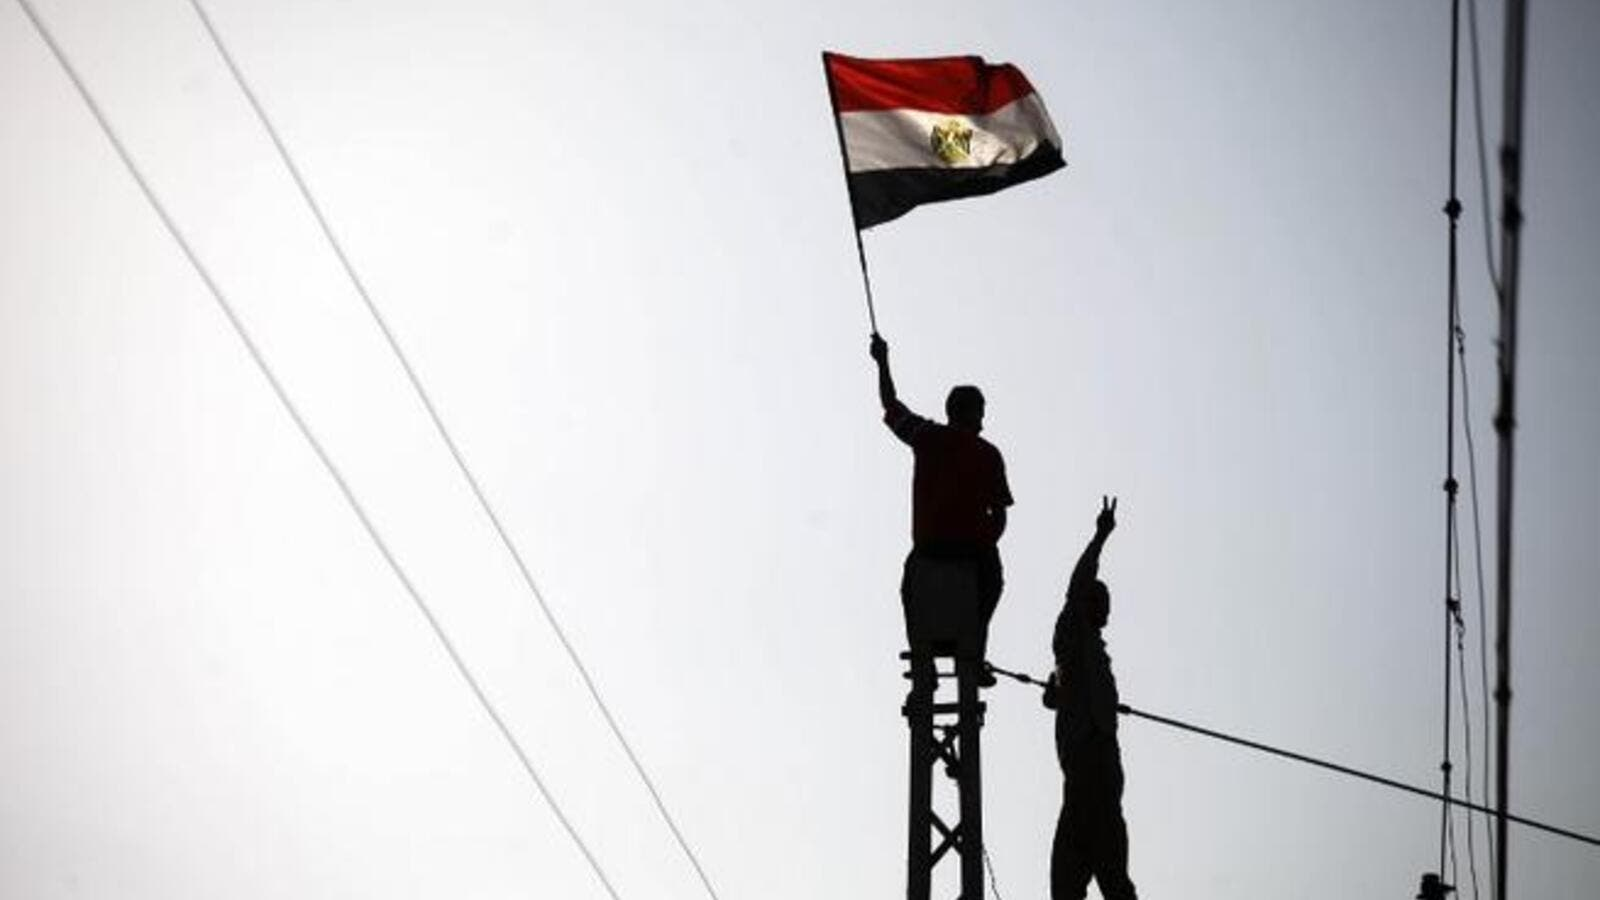 Protestor waves a flag as another makes the victory sign at the top of a Cairo electricity pole (AFP)